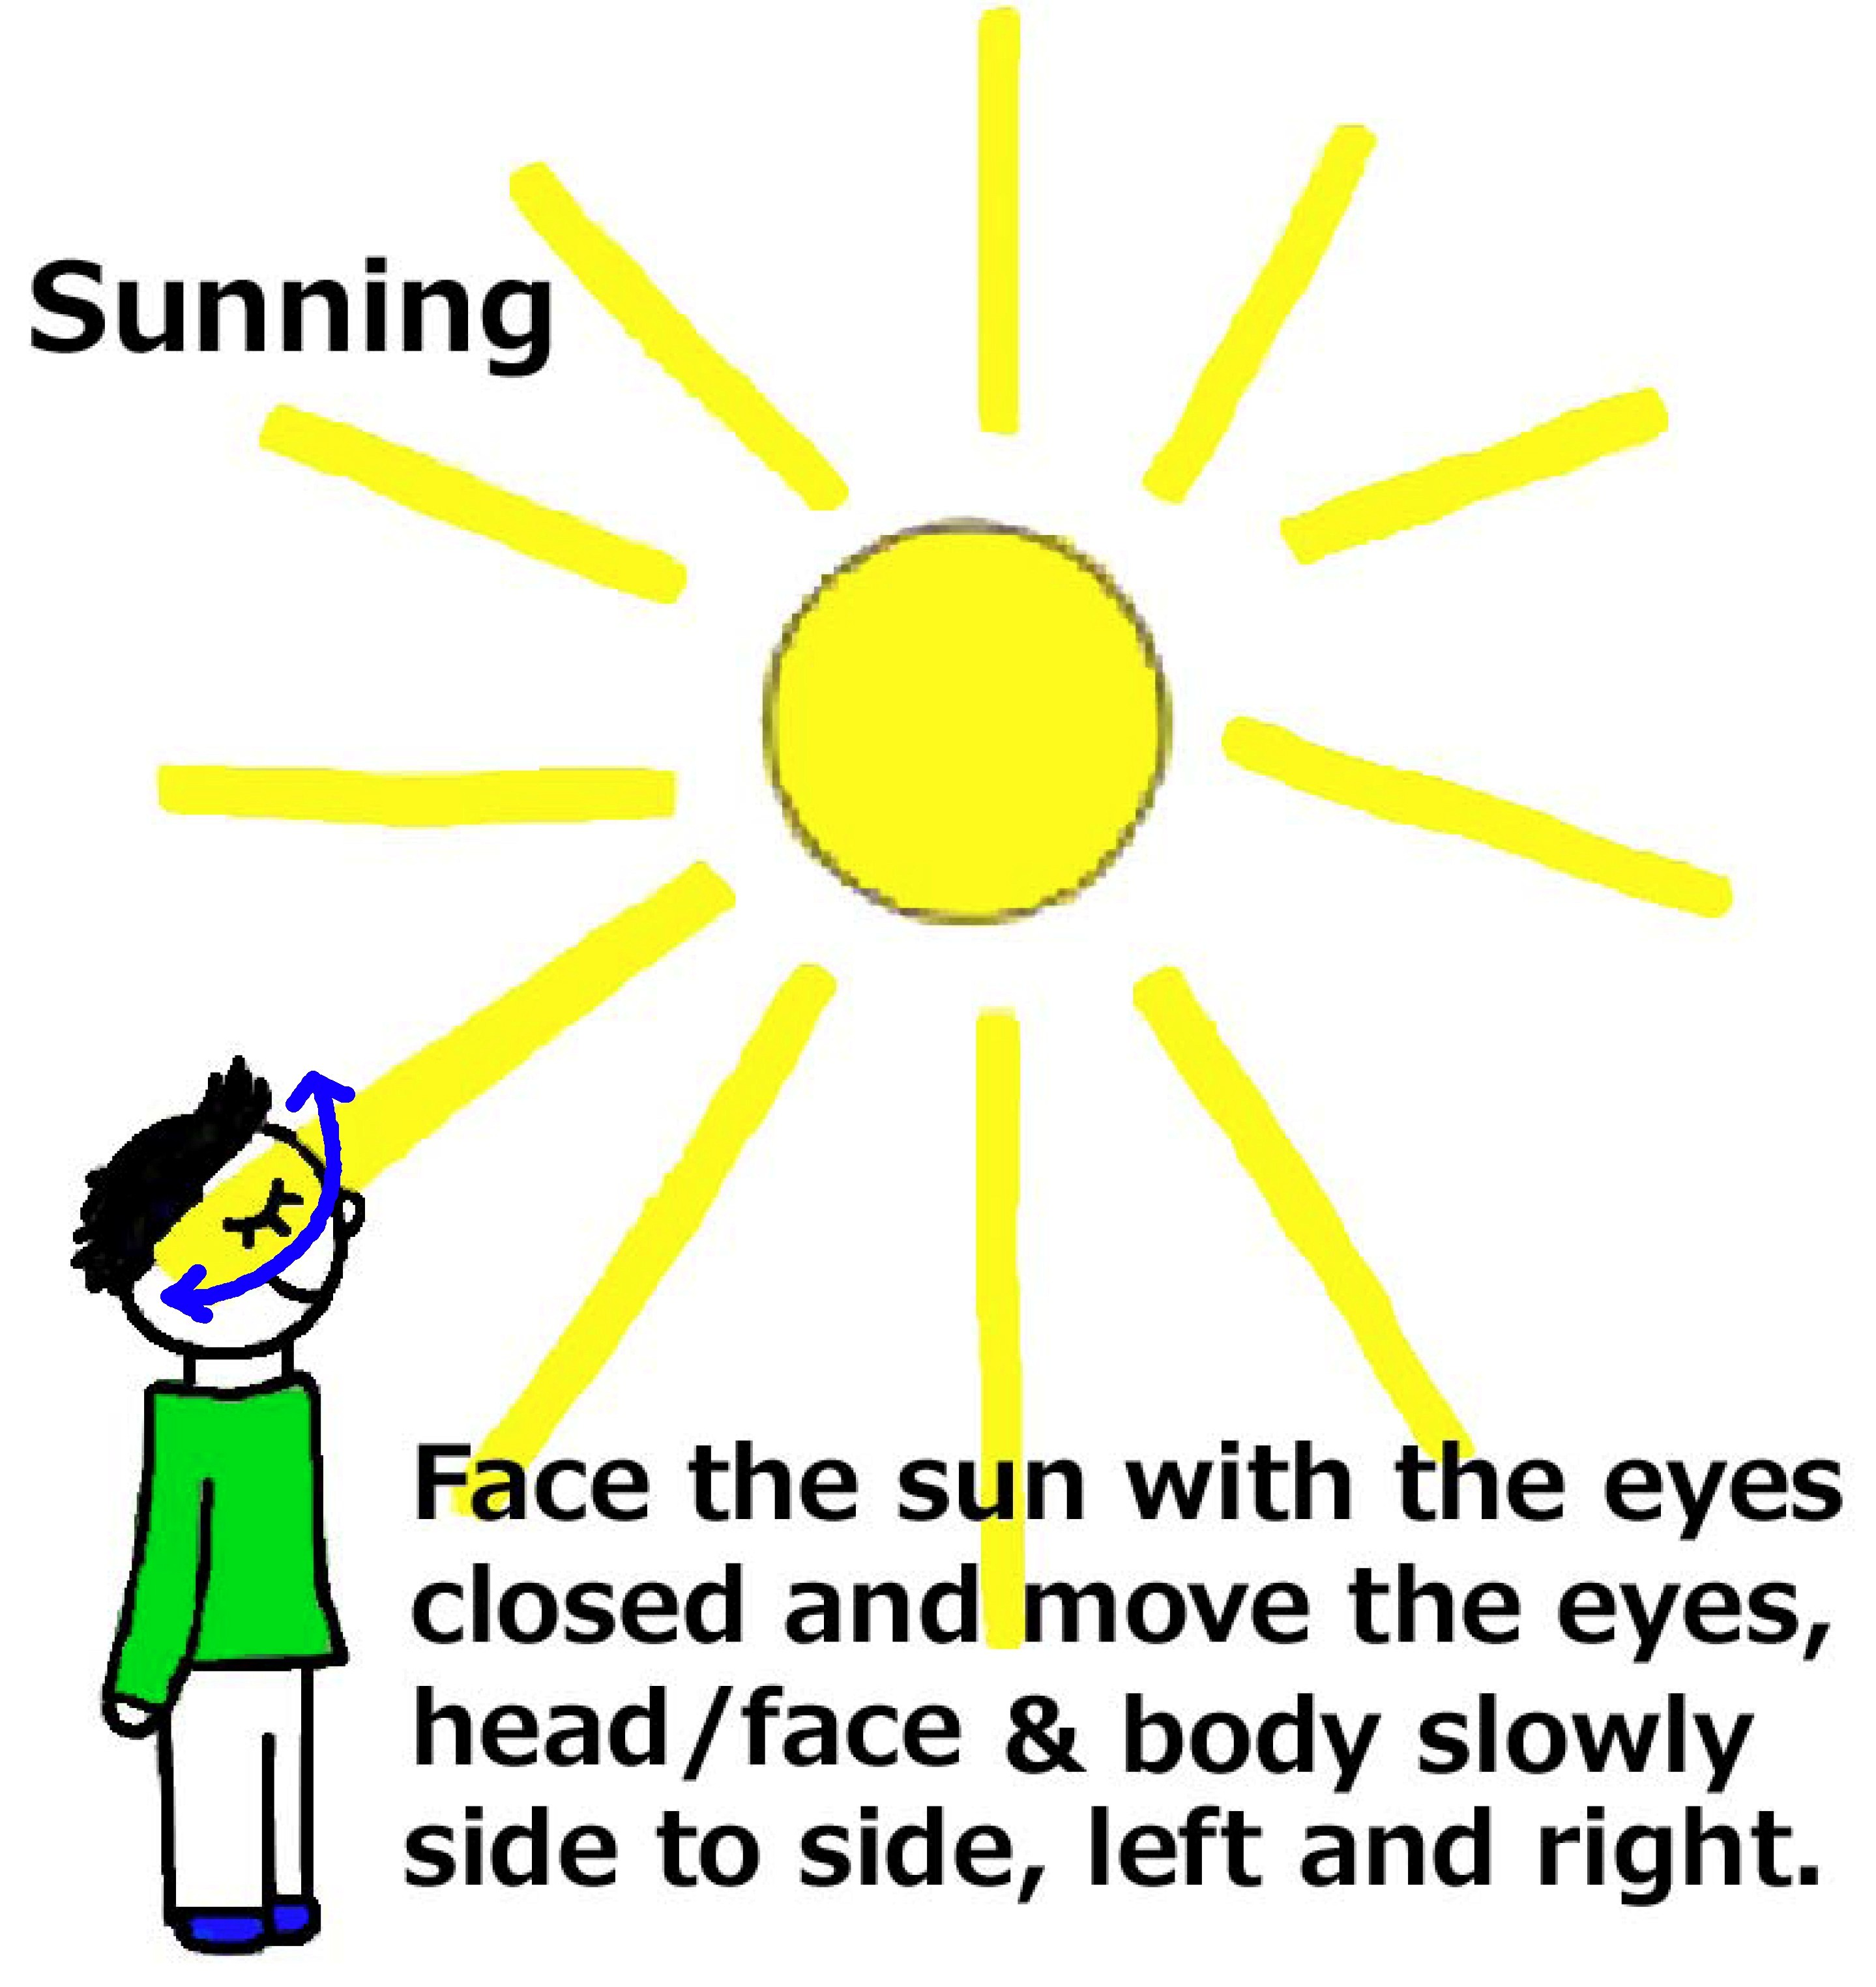 Sunning - Move the head/face and eyes side to side...